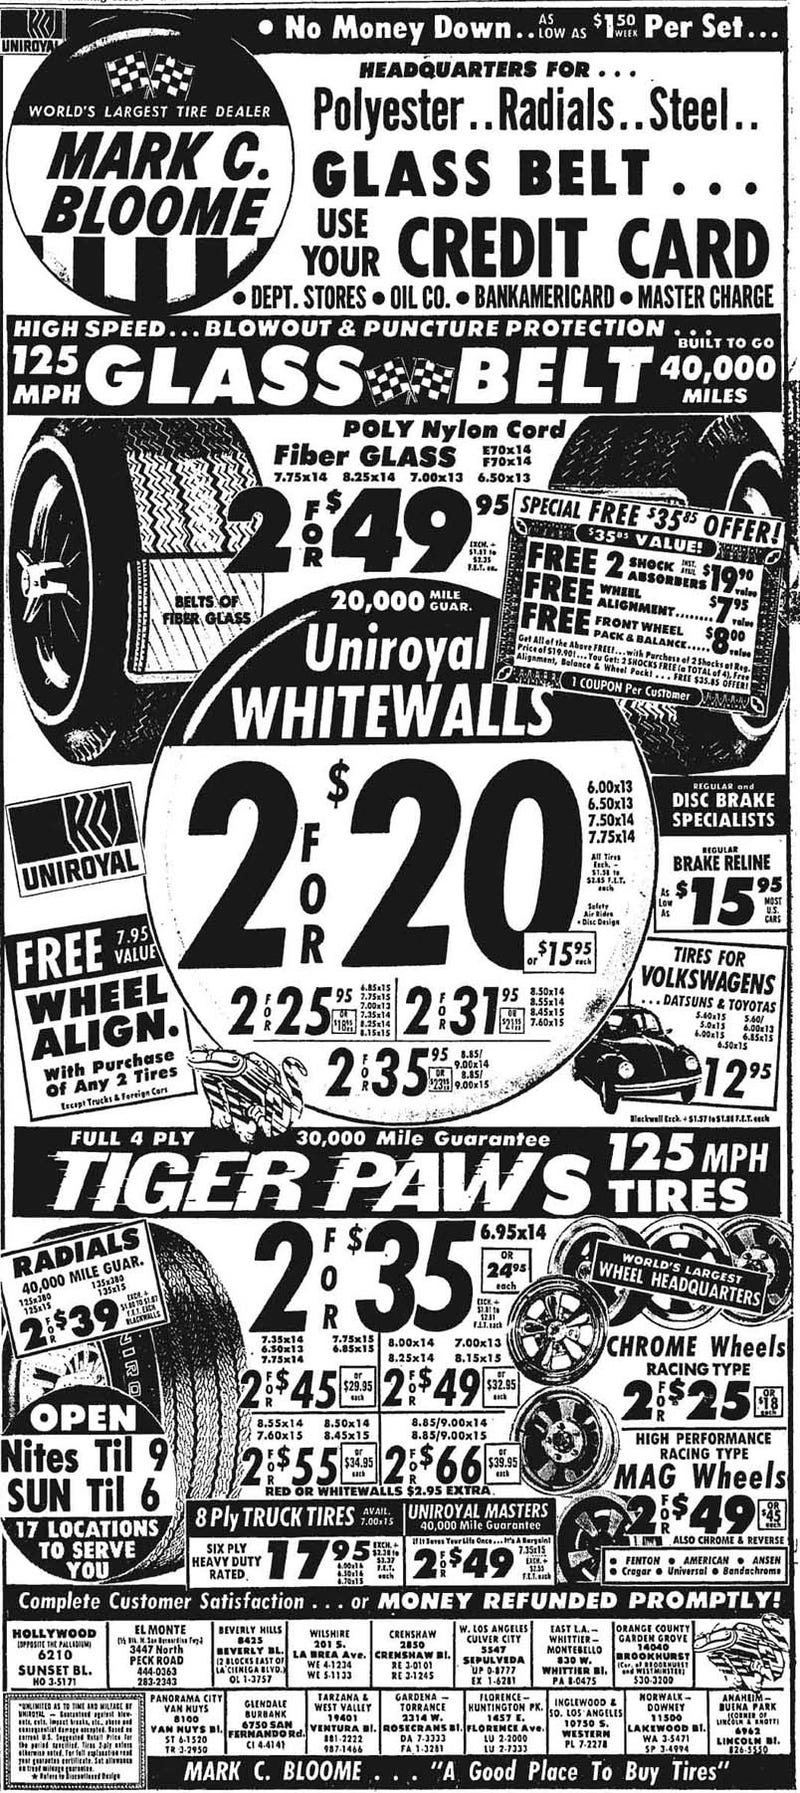 It's 1969, And You Need Some 7.75x14 Whitewalls For The Buick!